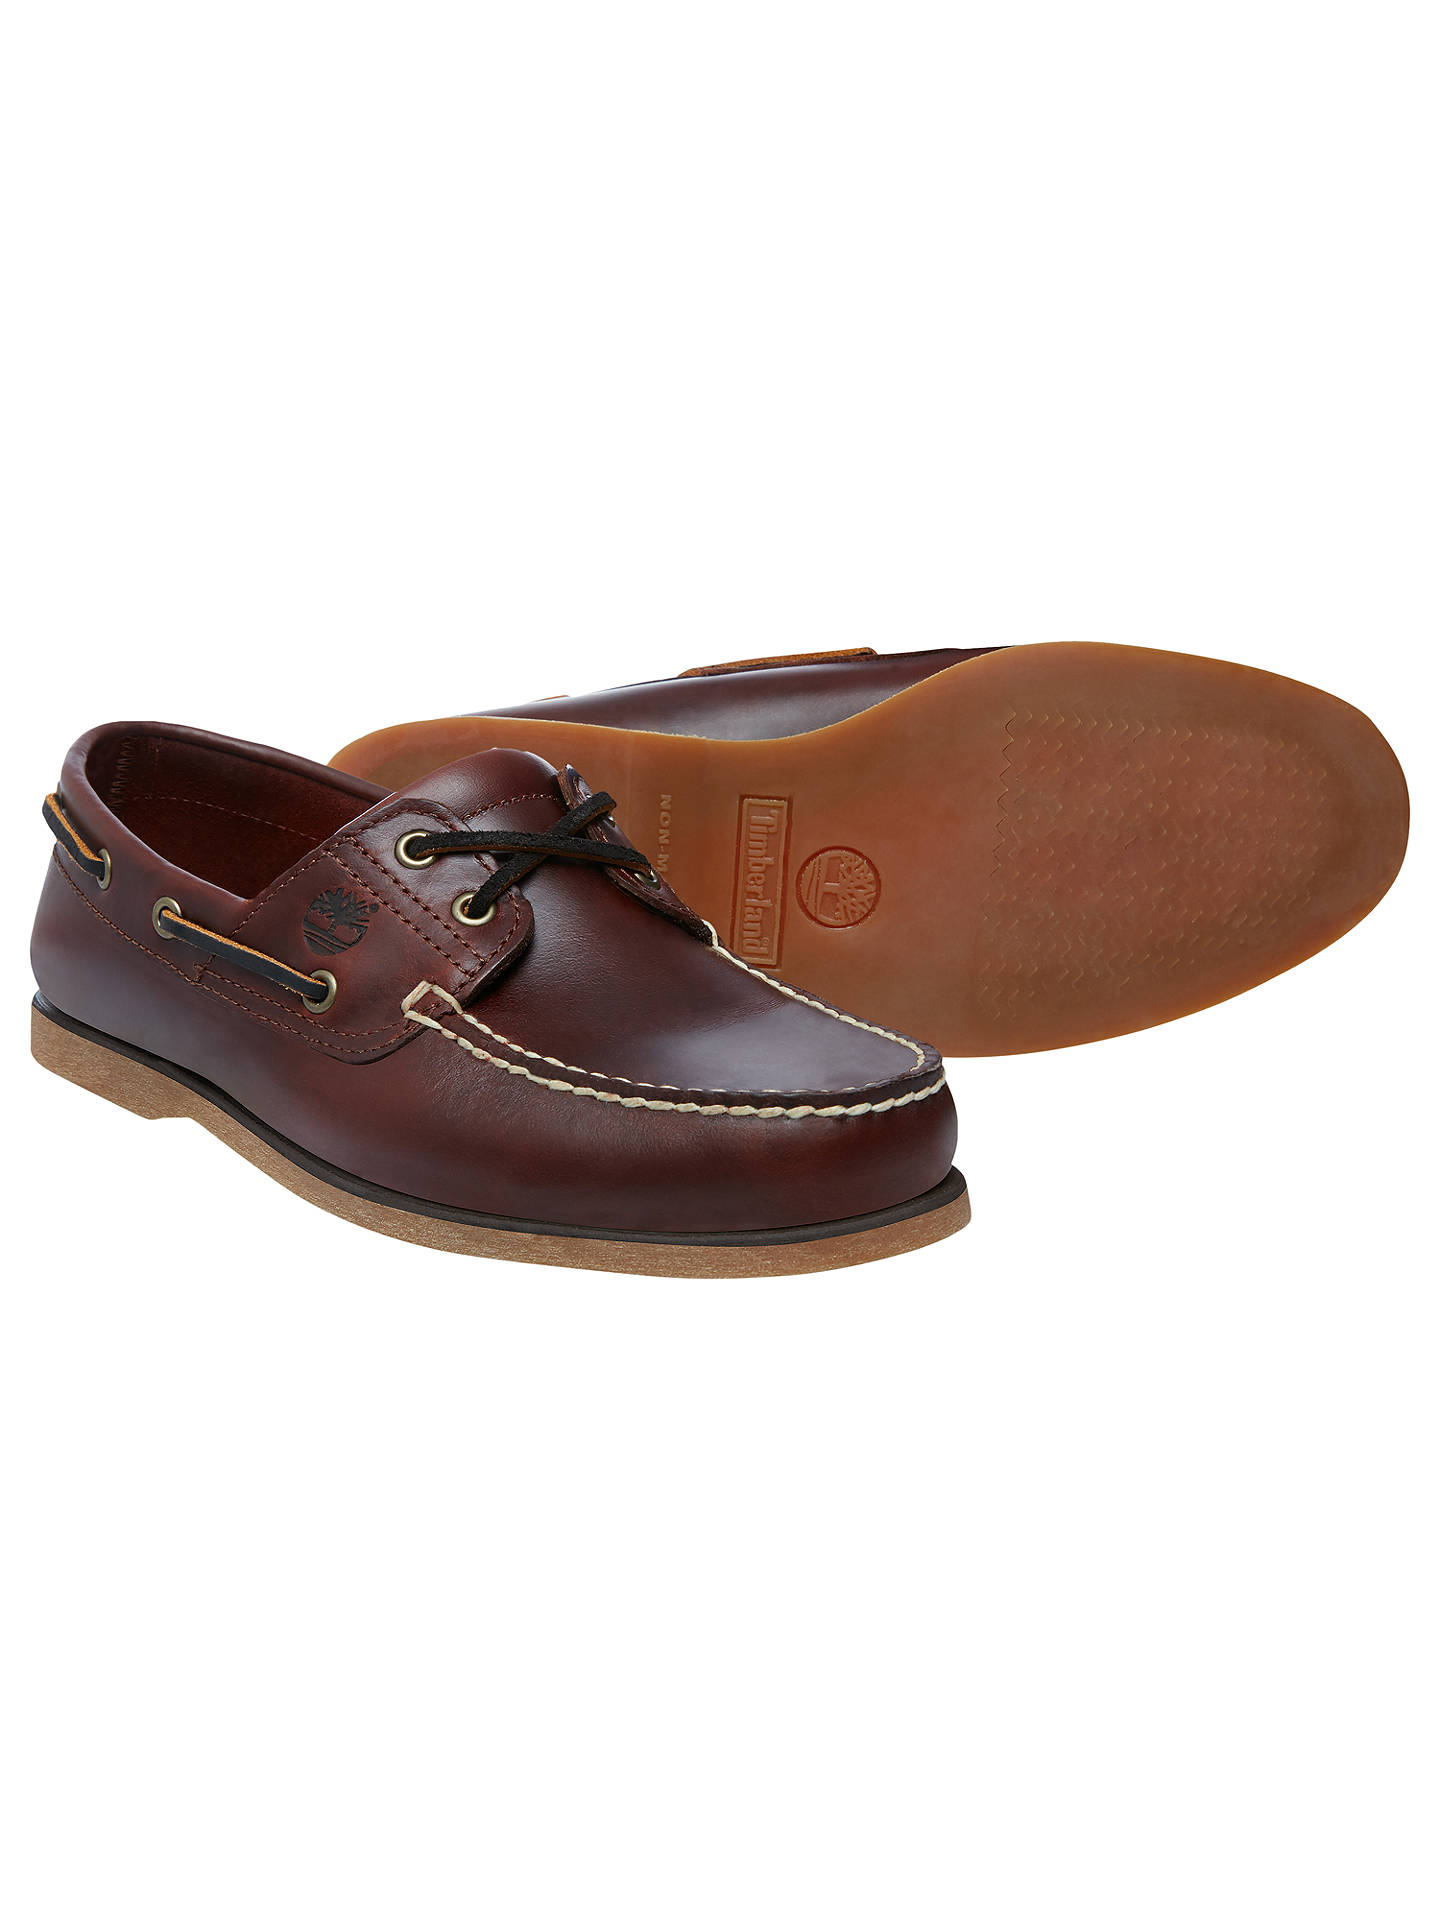 fb3bf4dfea48 ... Buy Timberland Leather Boat Shoes